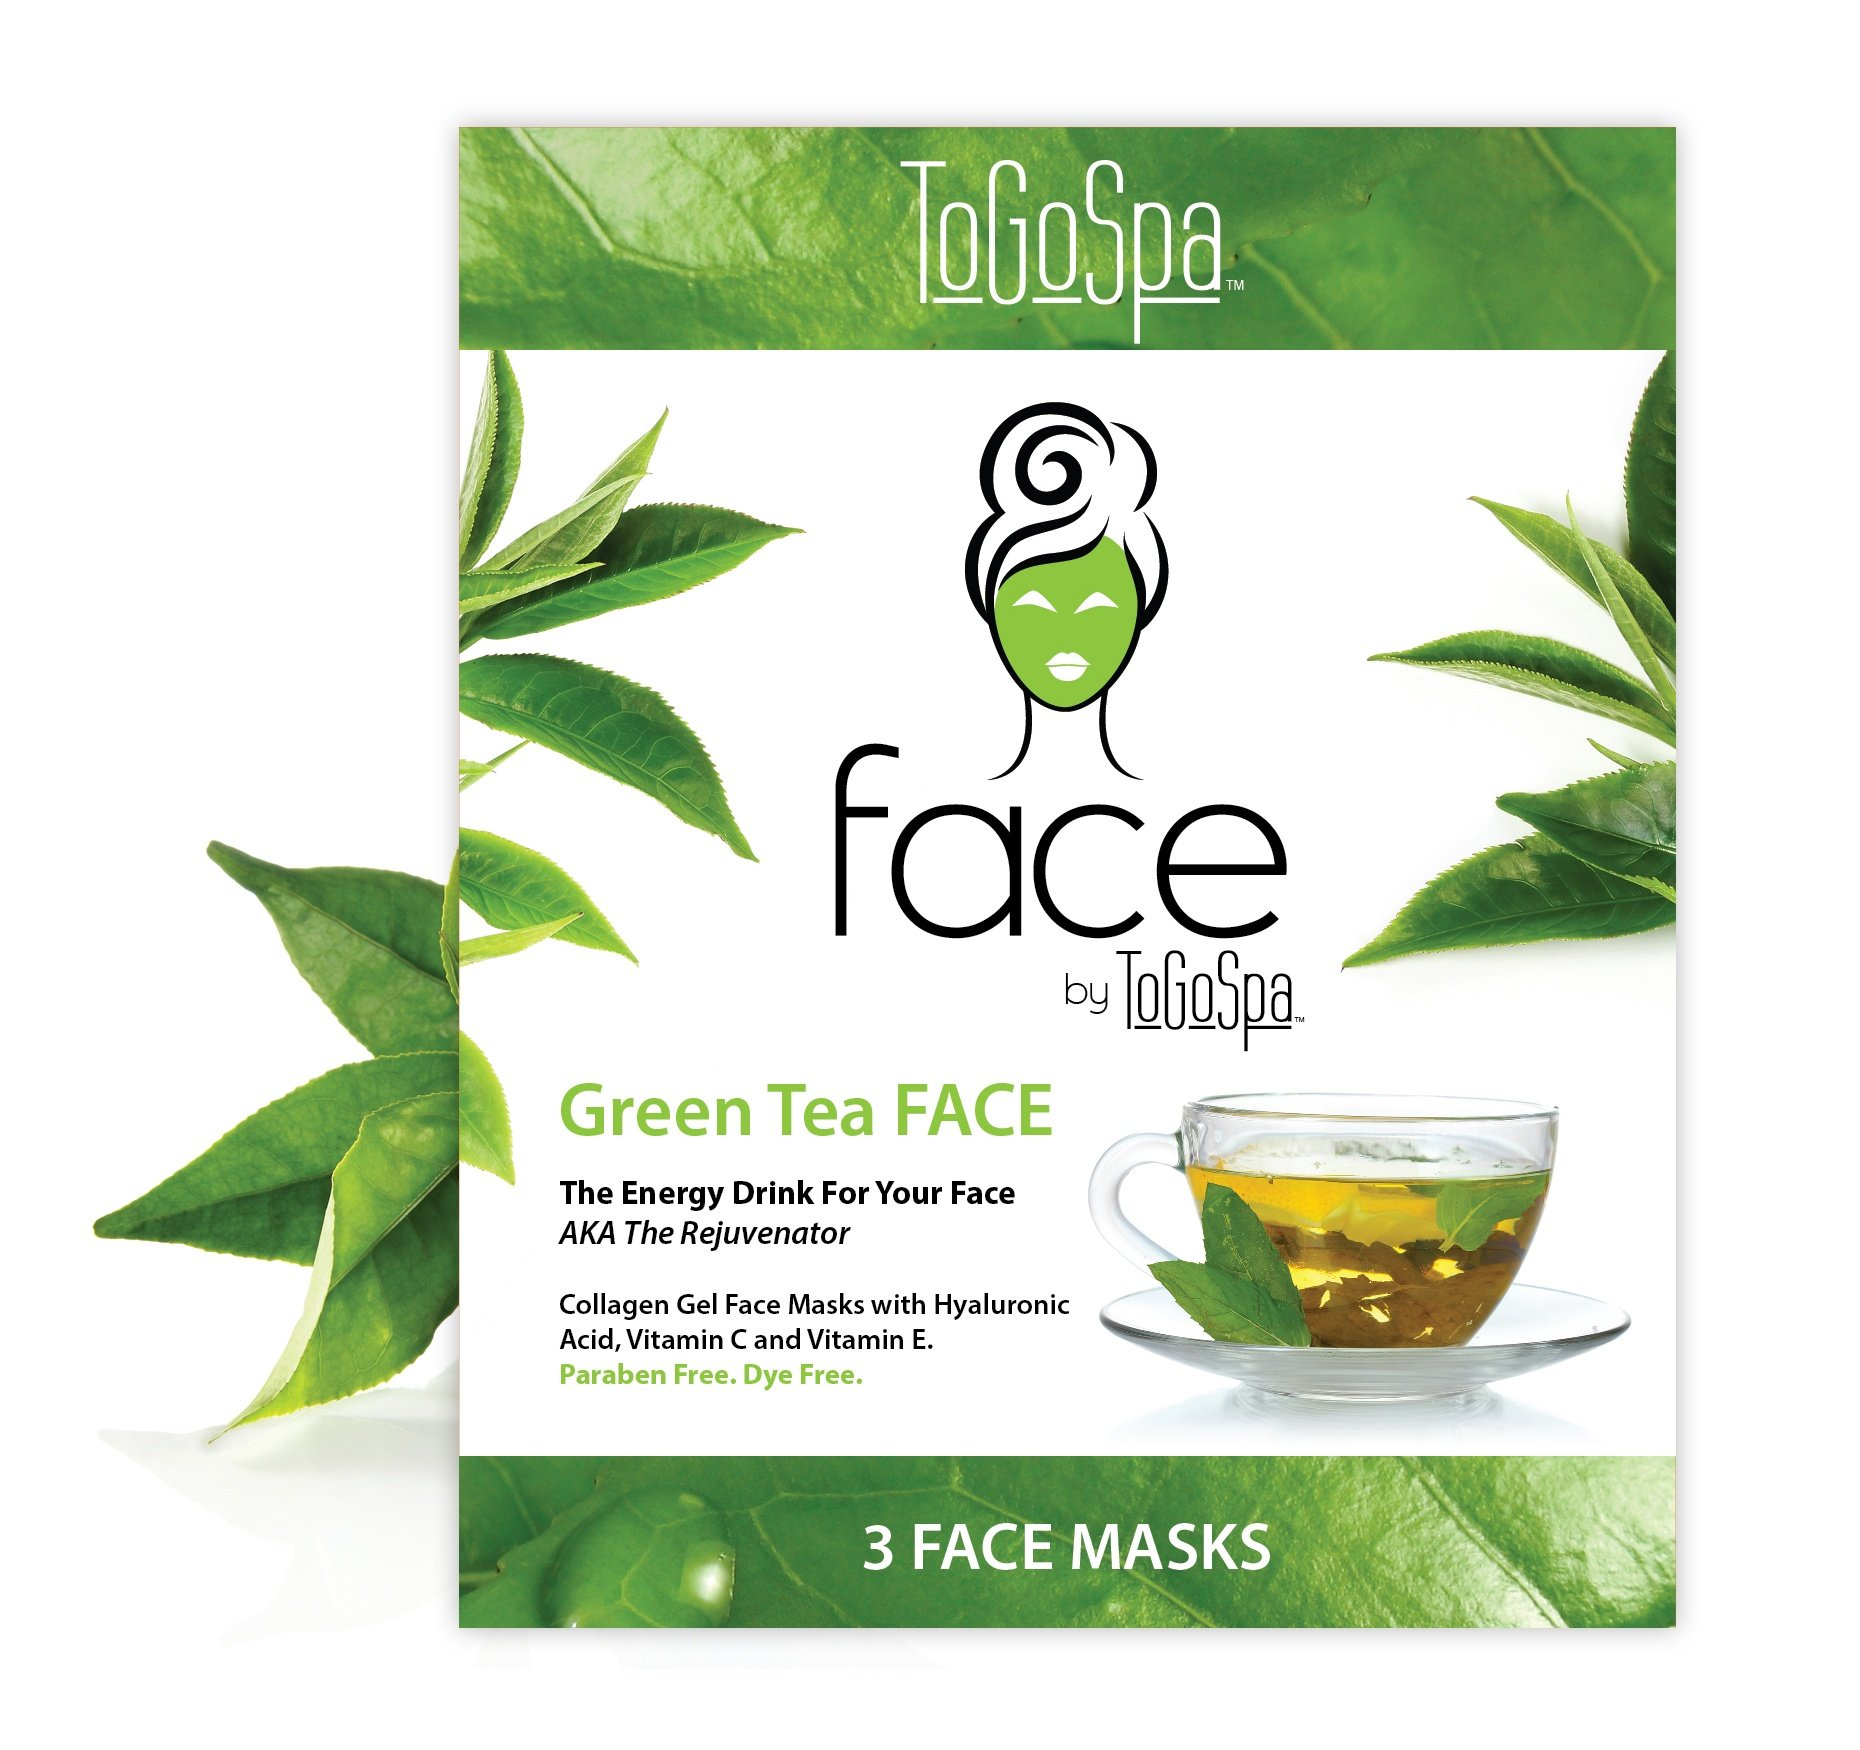 Green_Tea_FACE.jpg